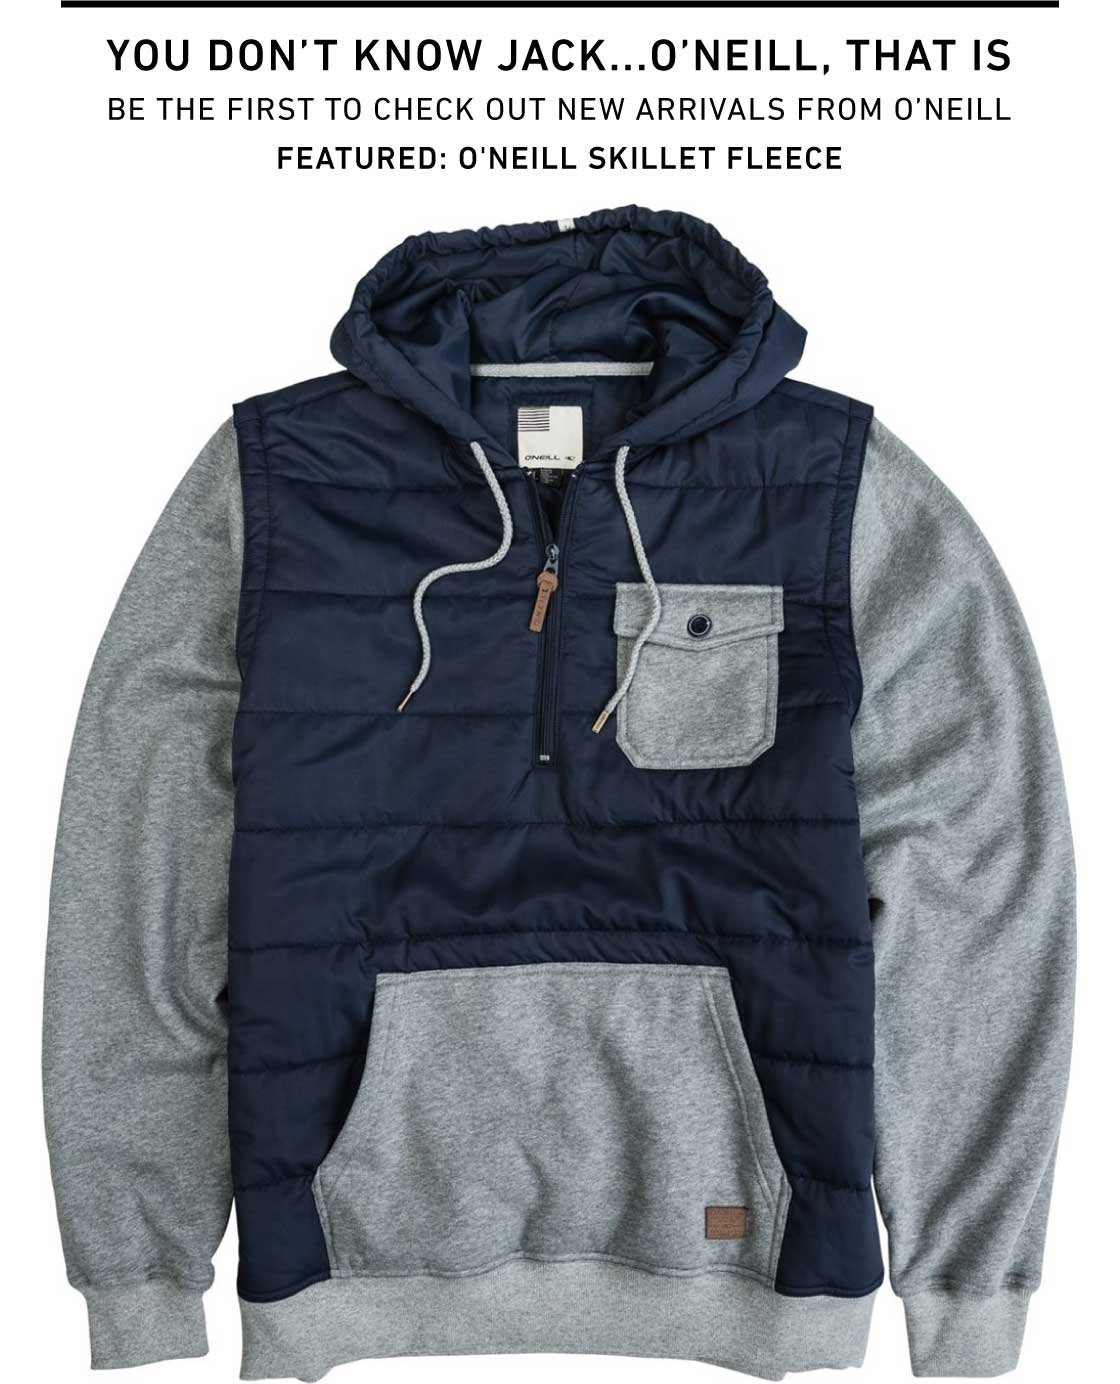 Shop New O'neill